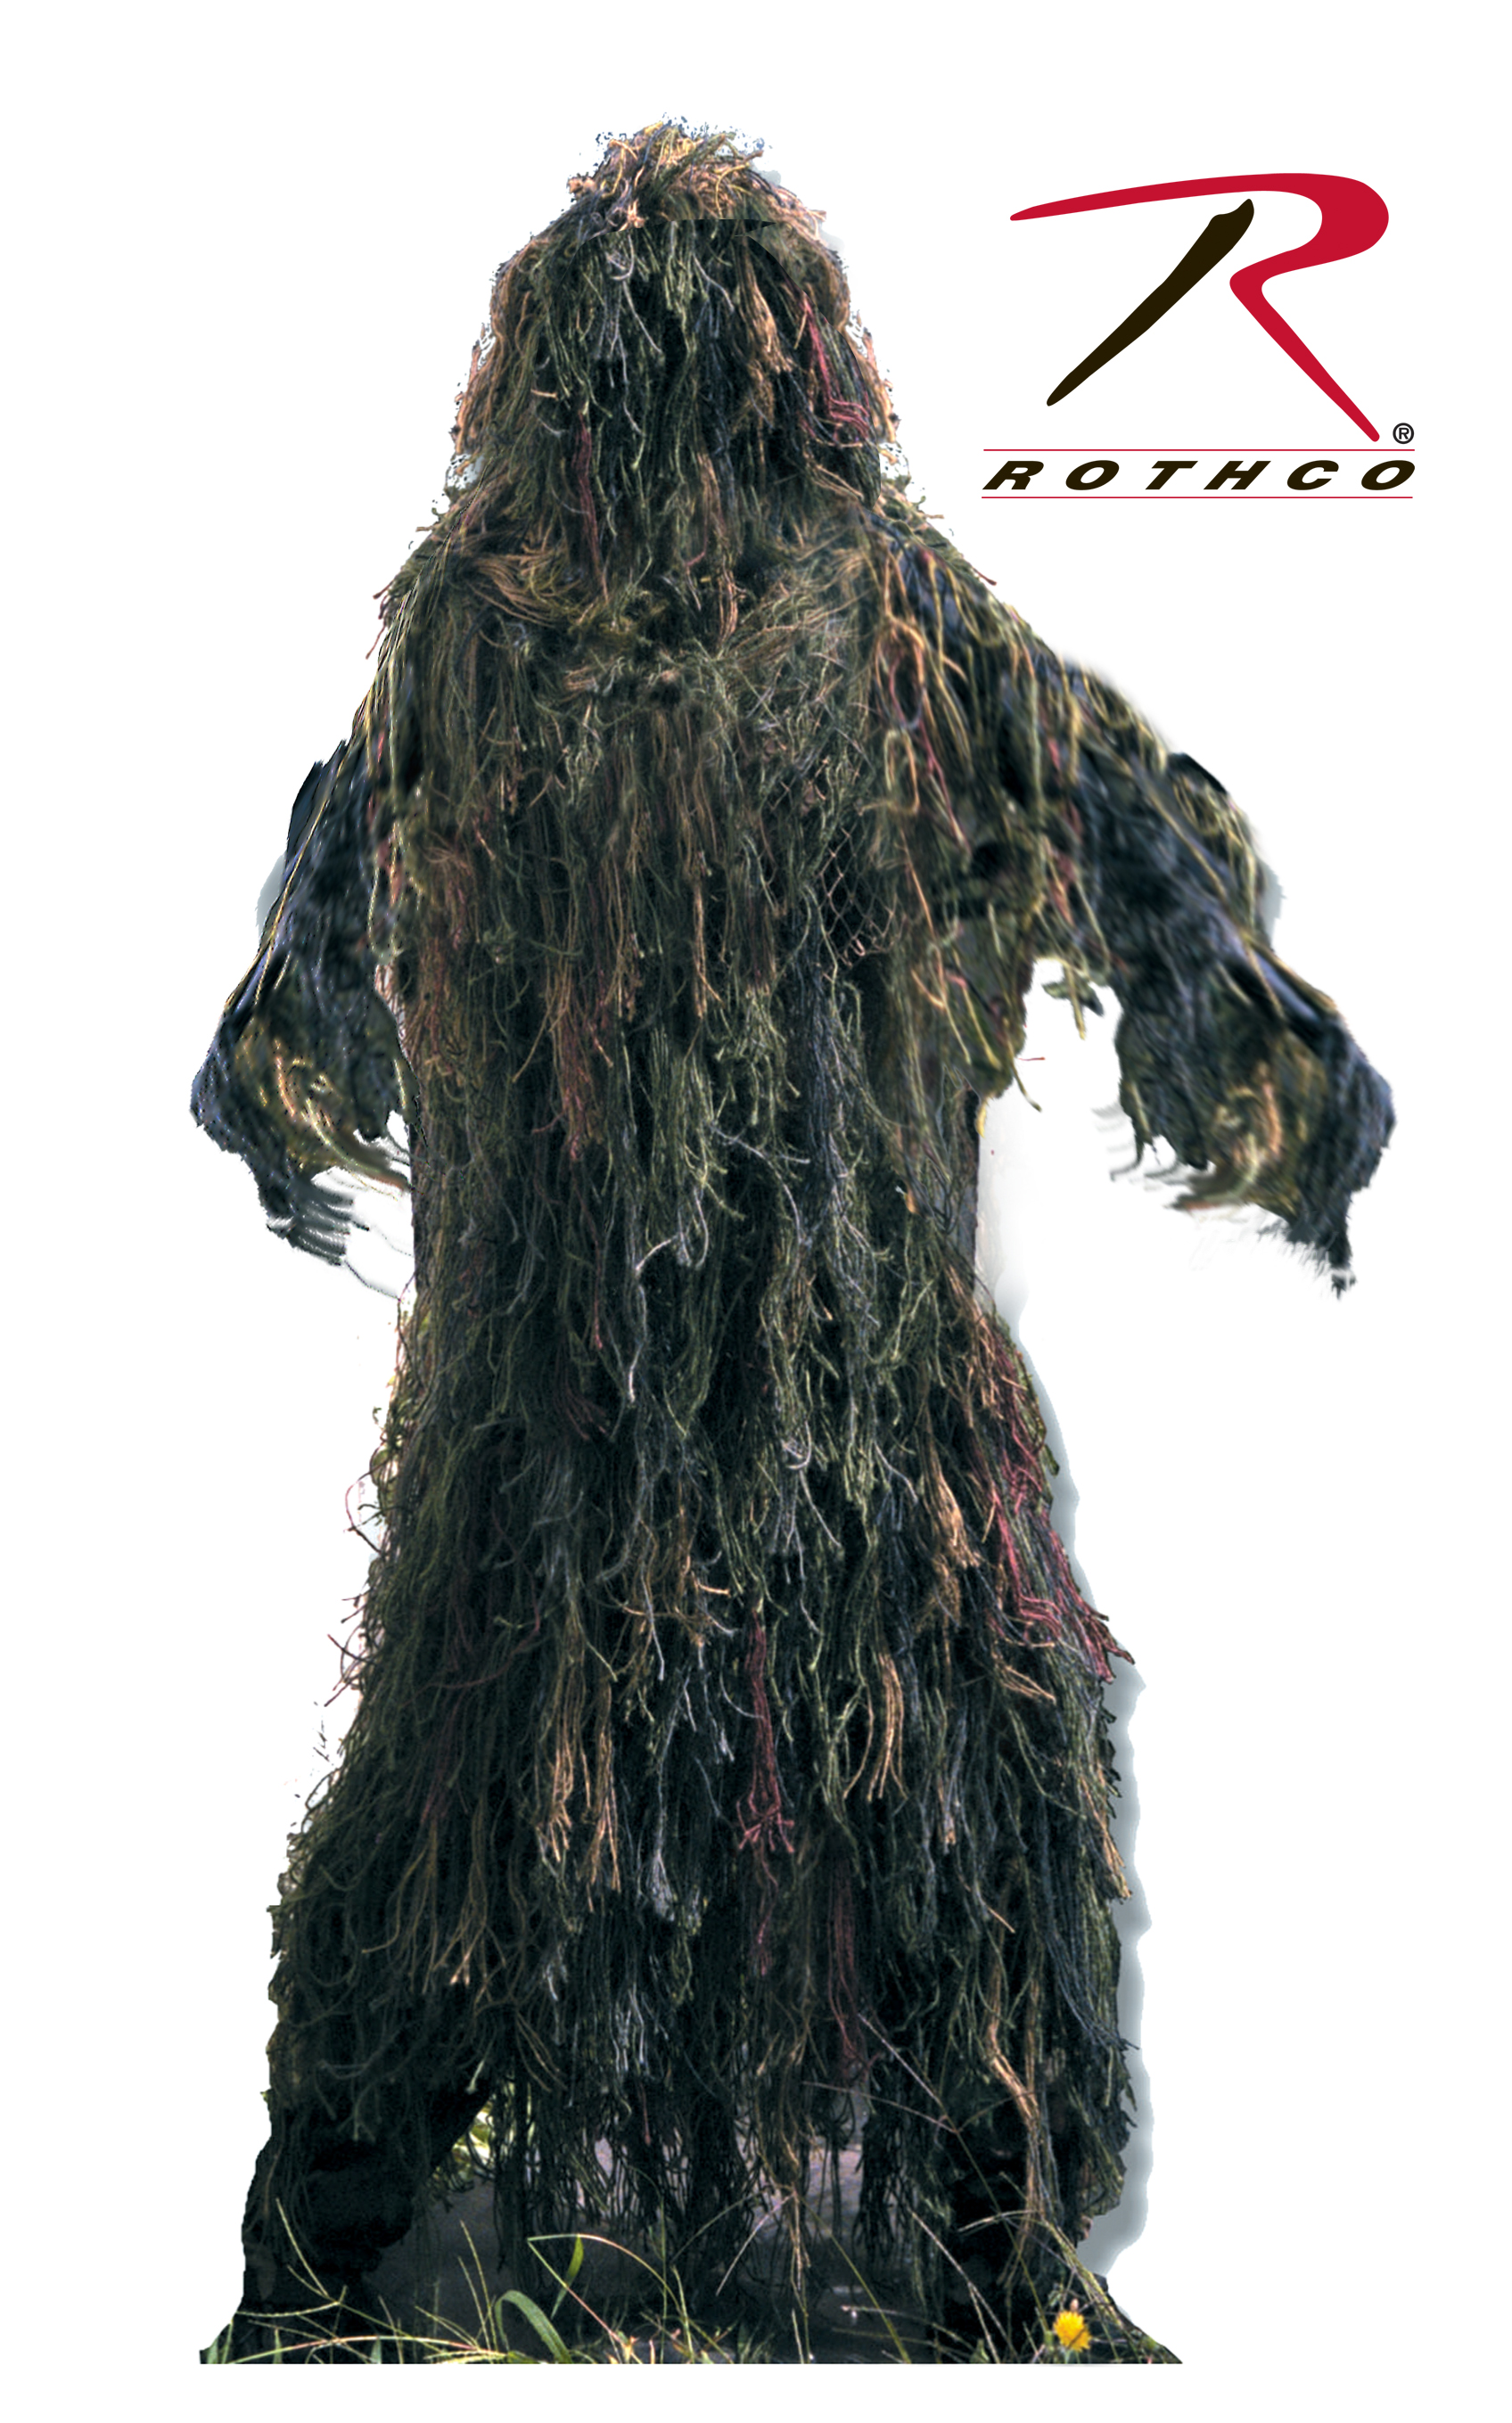 d688a1066c032 ... childrens ghillie suit, ghilly suit, ghillie suit, gillie suits.  Loading zoom